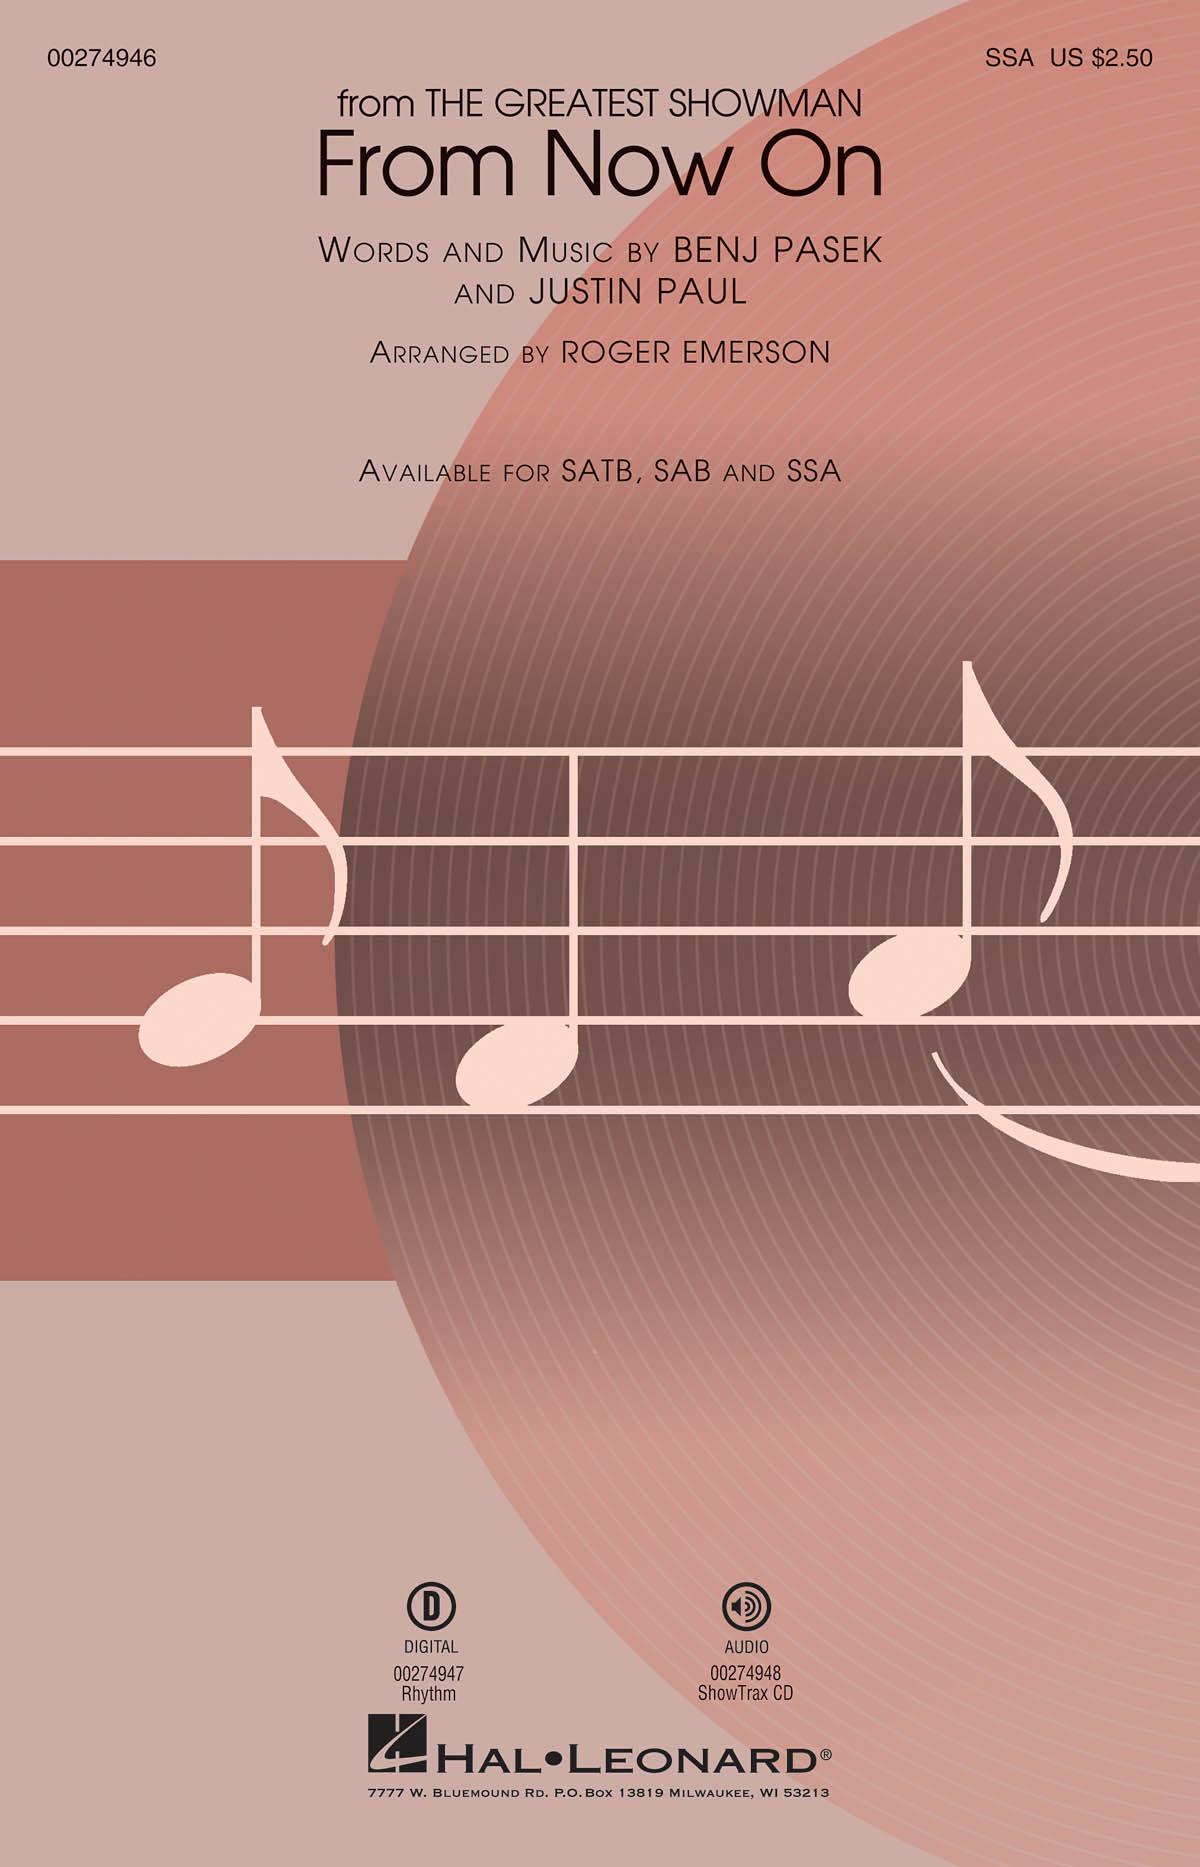 From Now On 'The Greatest Showman' - SSA (arr. Emerson). Sheet Music  Downloads for SSA  Piano Accompaniment